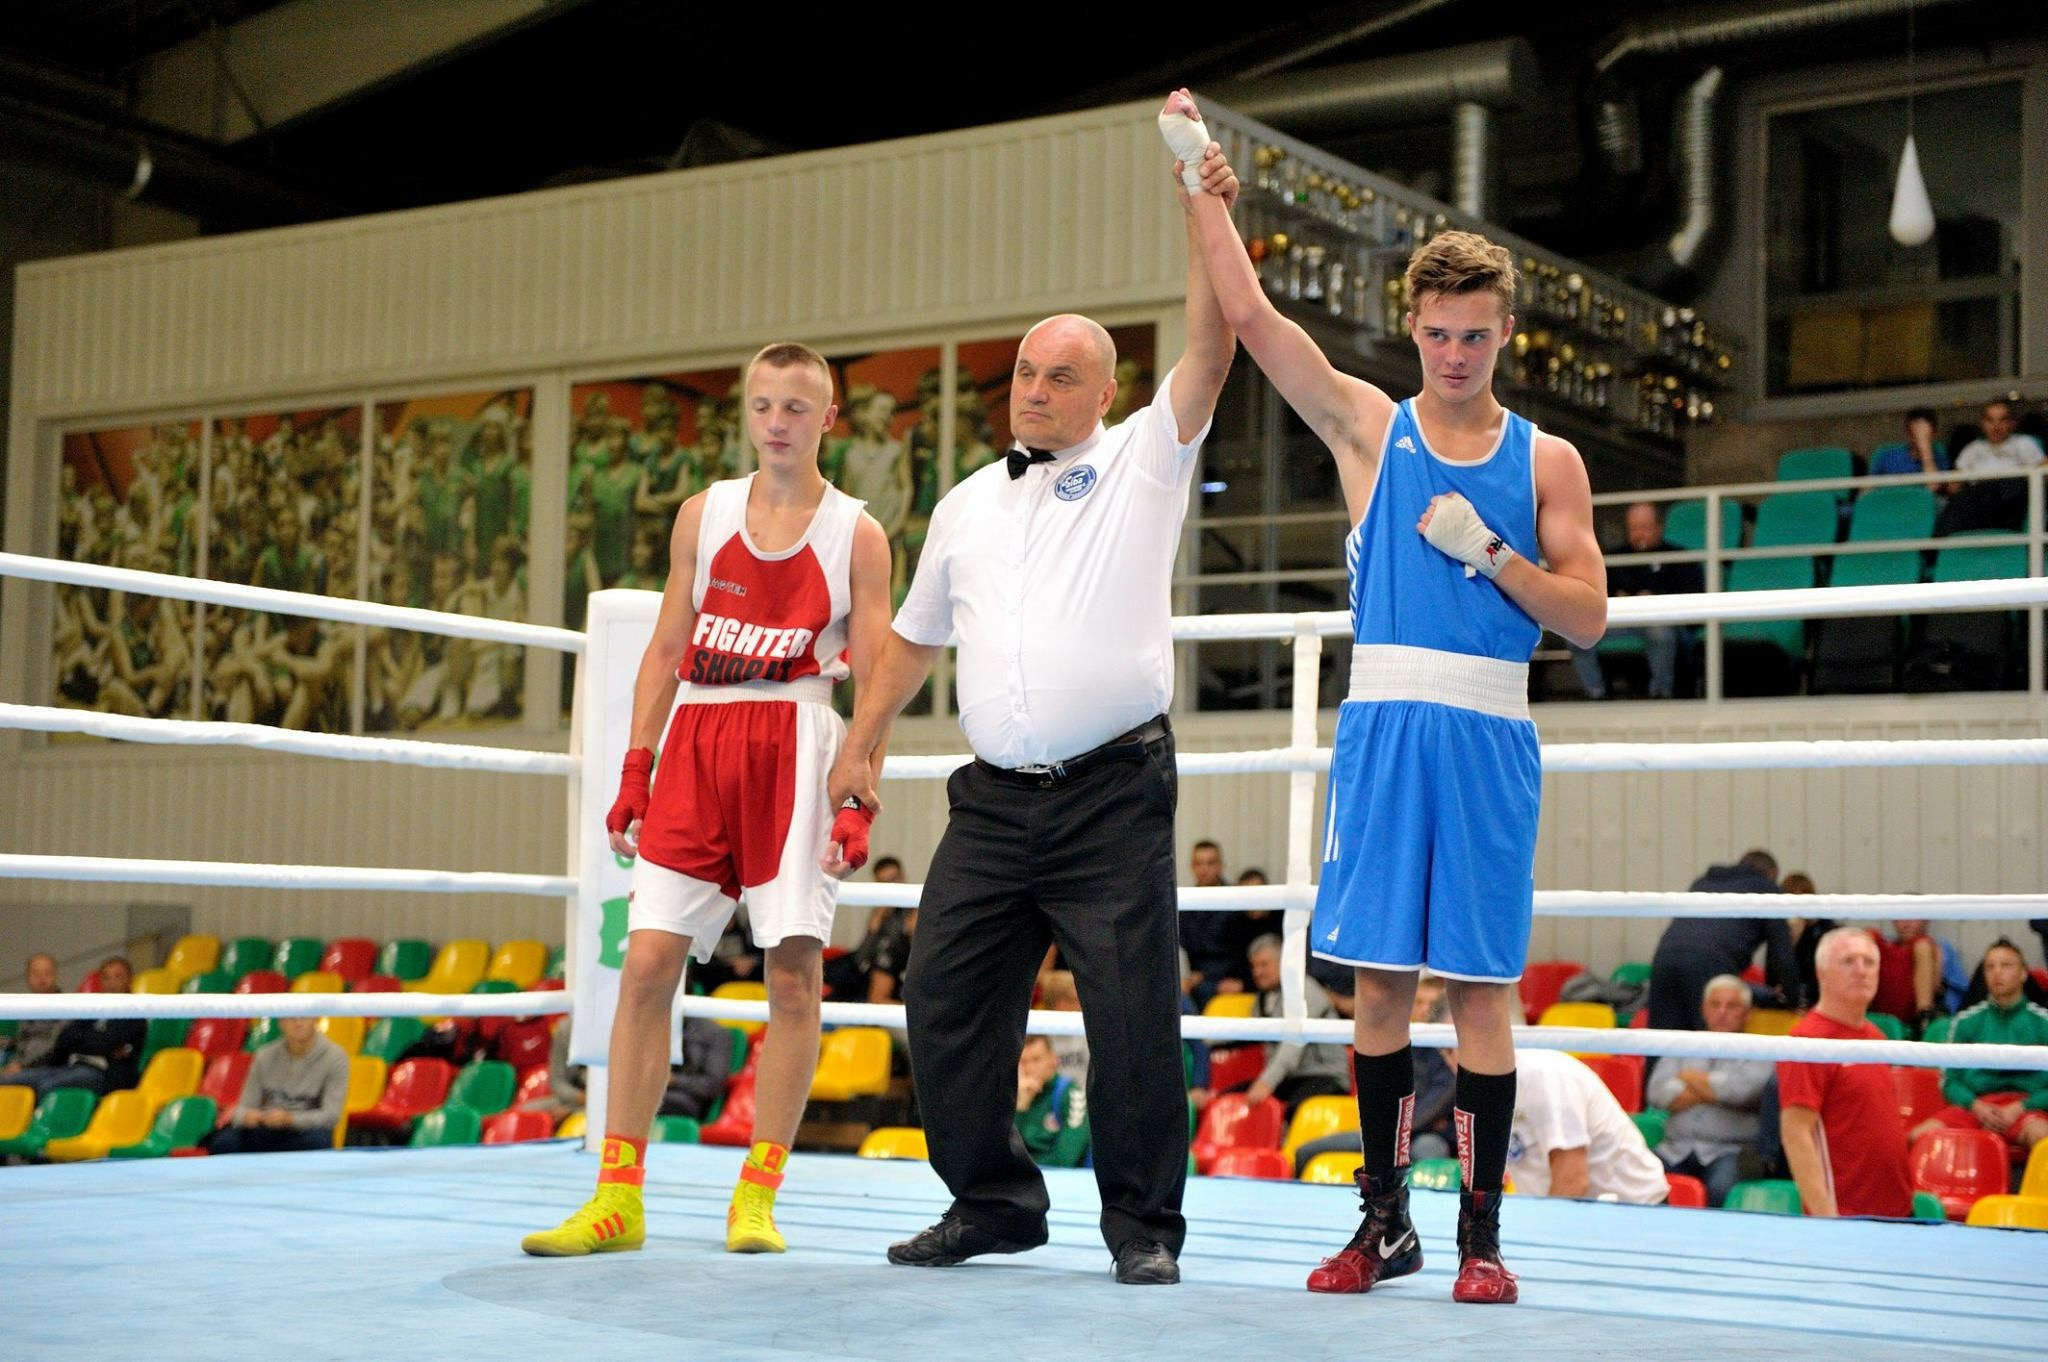 Aiba tournement 2018